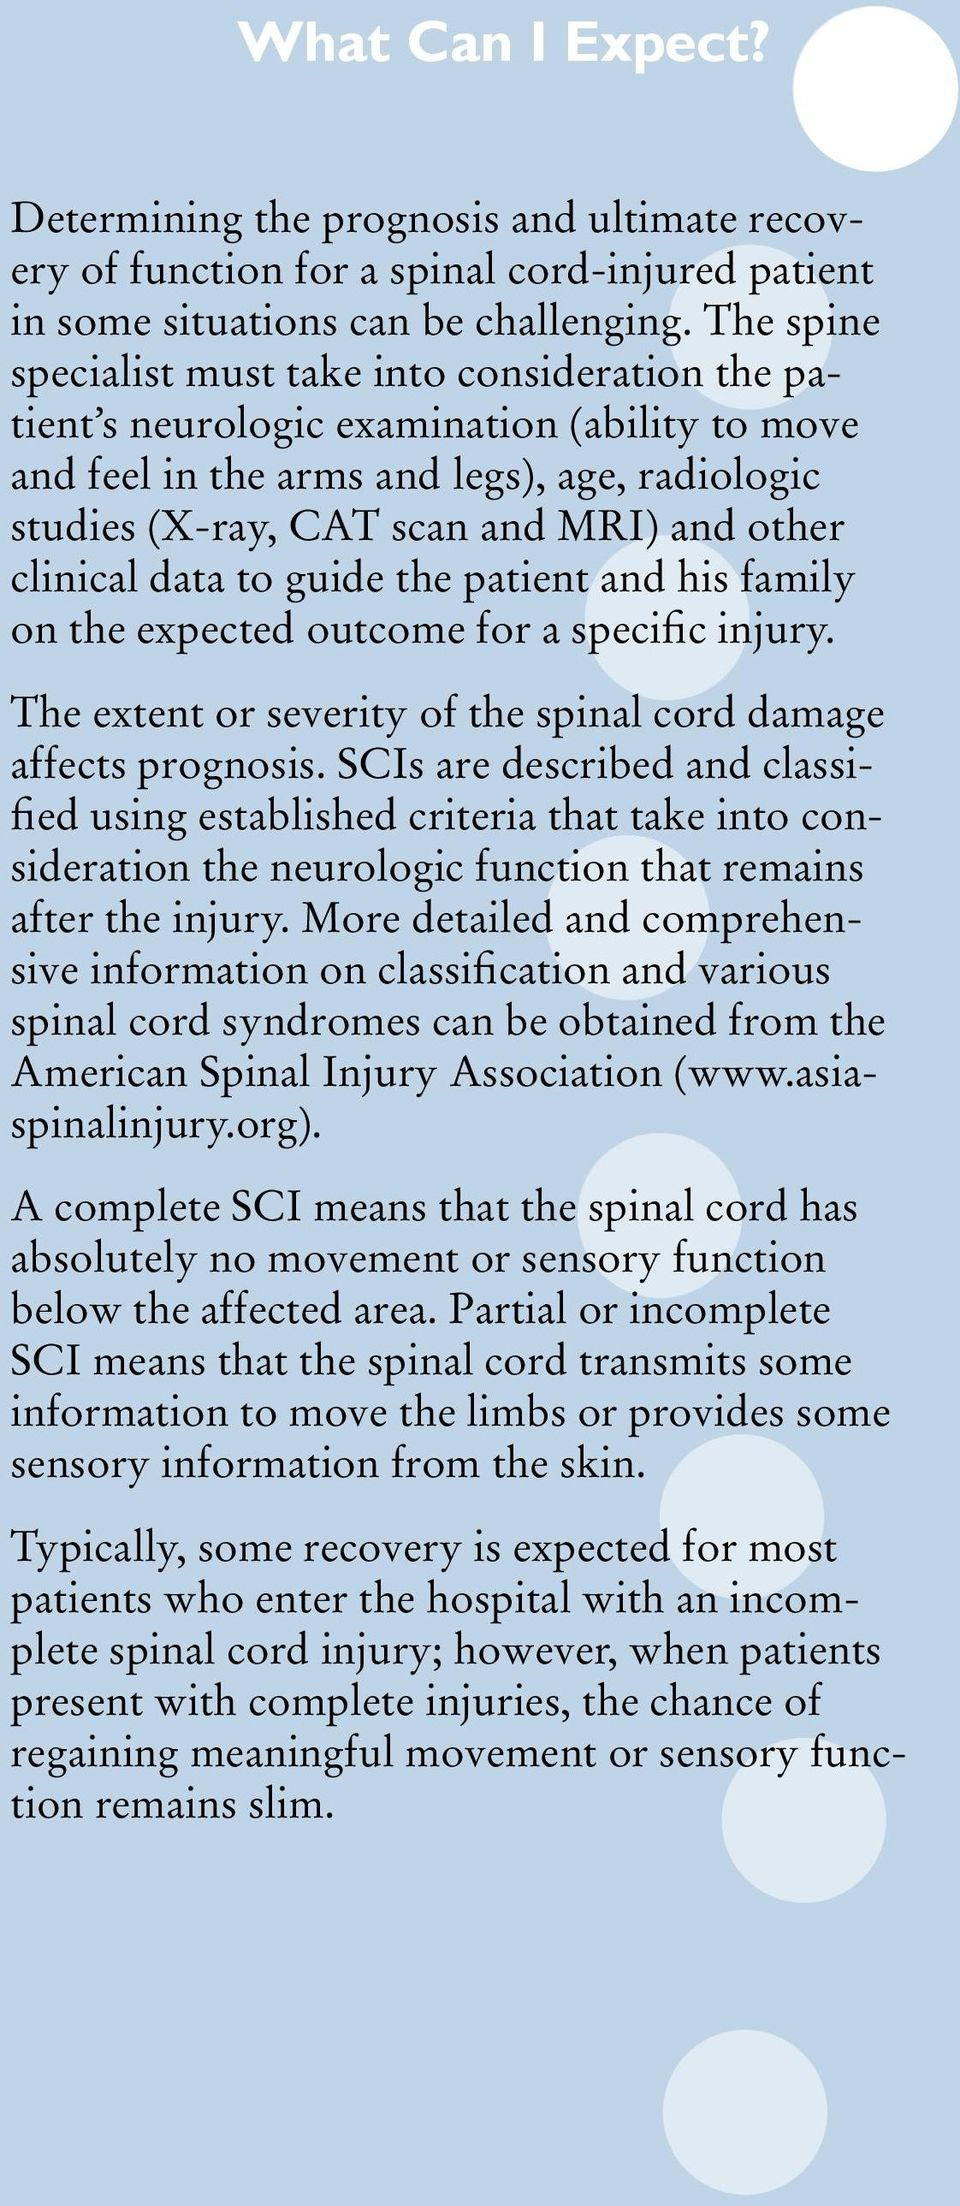 clinical data to guide the patient and his family on the expected outcome for a specific injury. The extent or severity of the spinal cord damage affects prognosis.